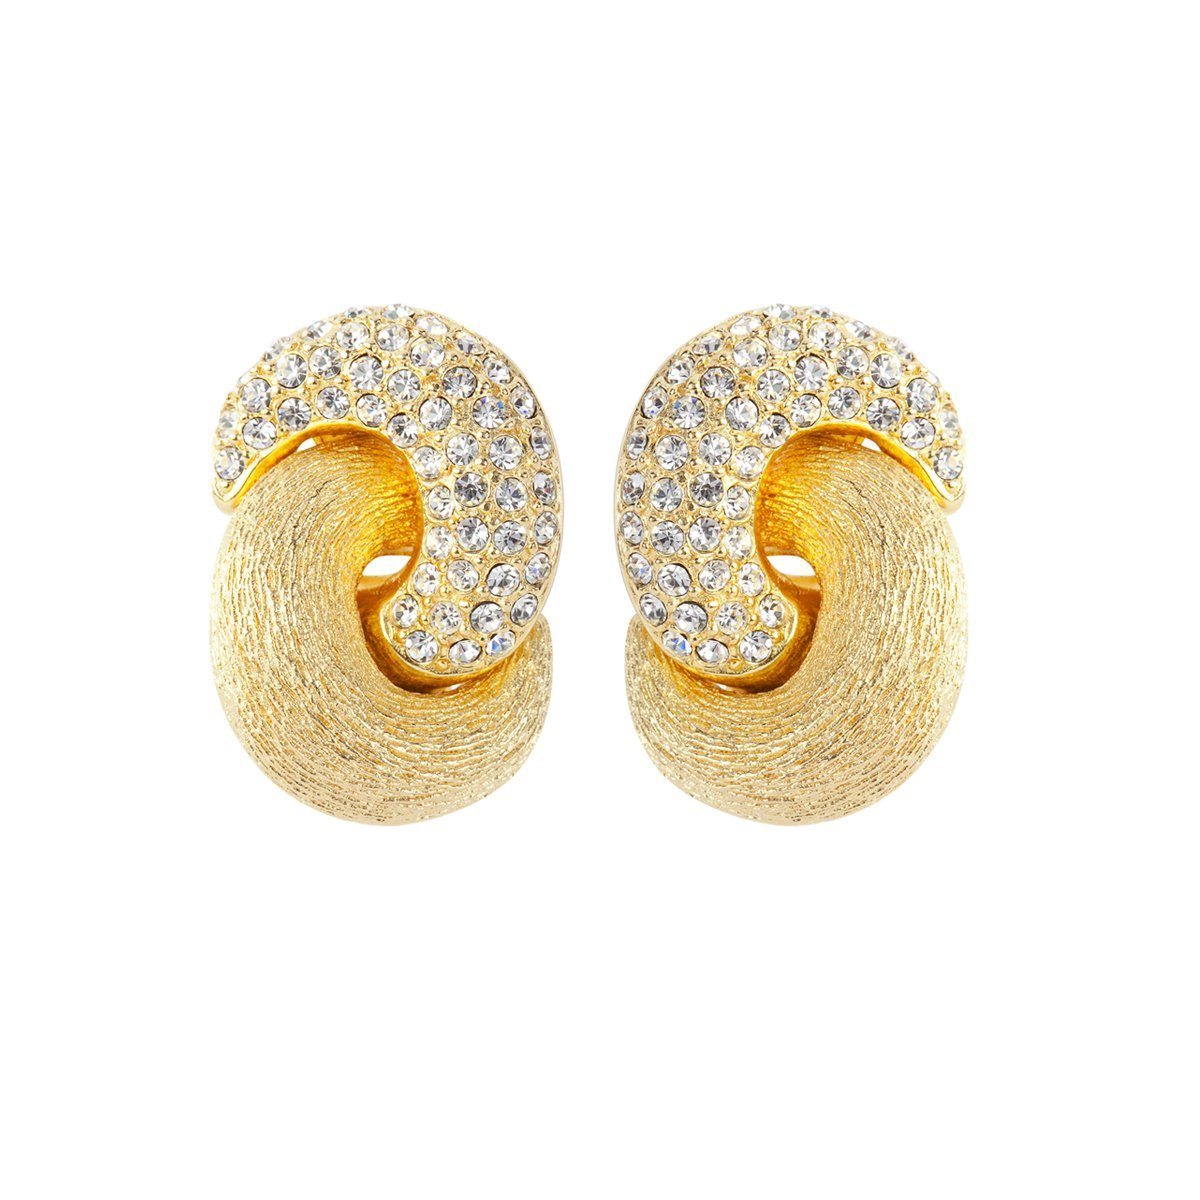 1980S Vintage Christian Dior Love Knot Earrings